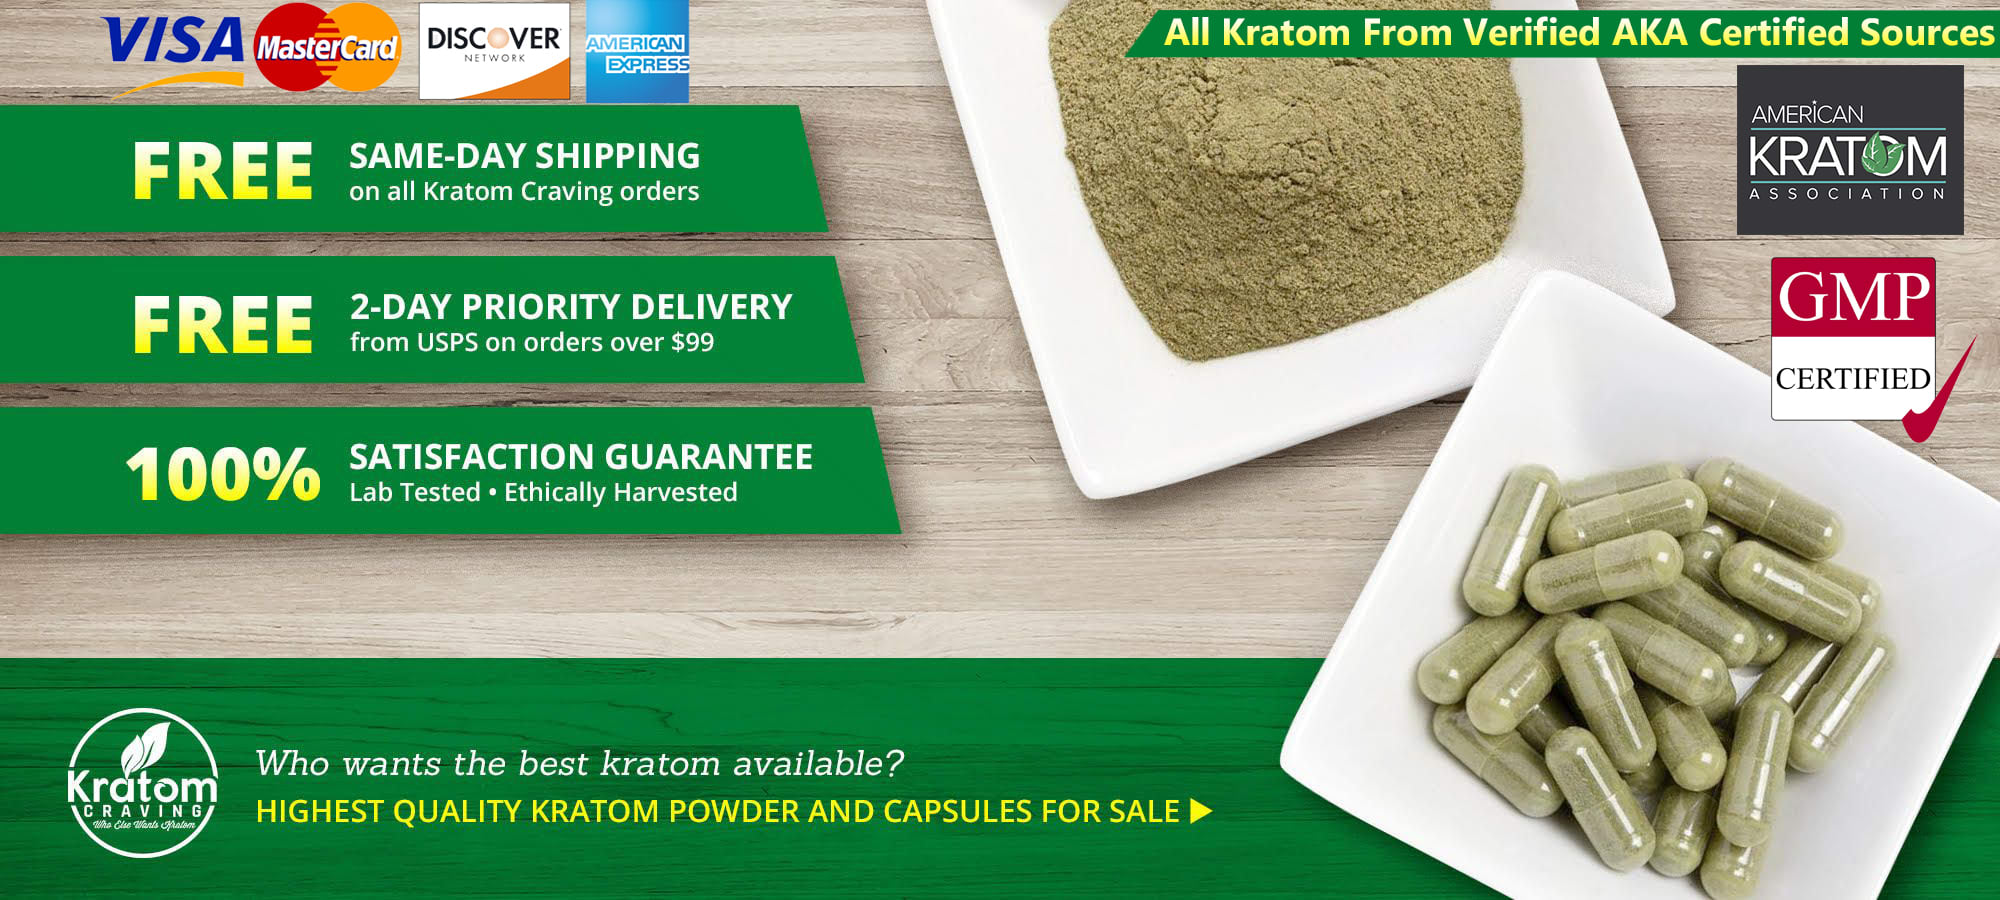 Buy Quality Kratom Online-1 modified 2.jpg ATTACHMENT DETAILS Buy-Quality Kratom Online